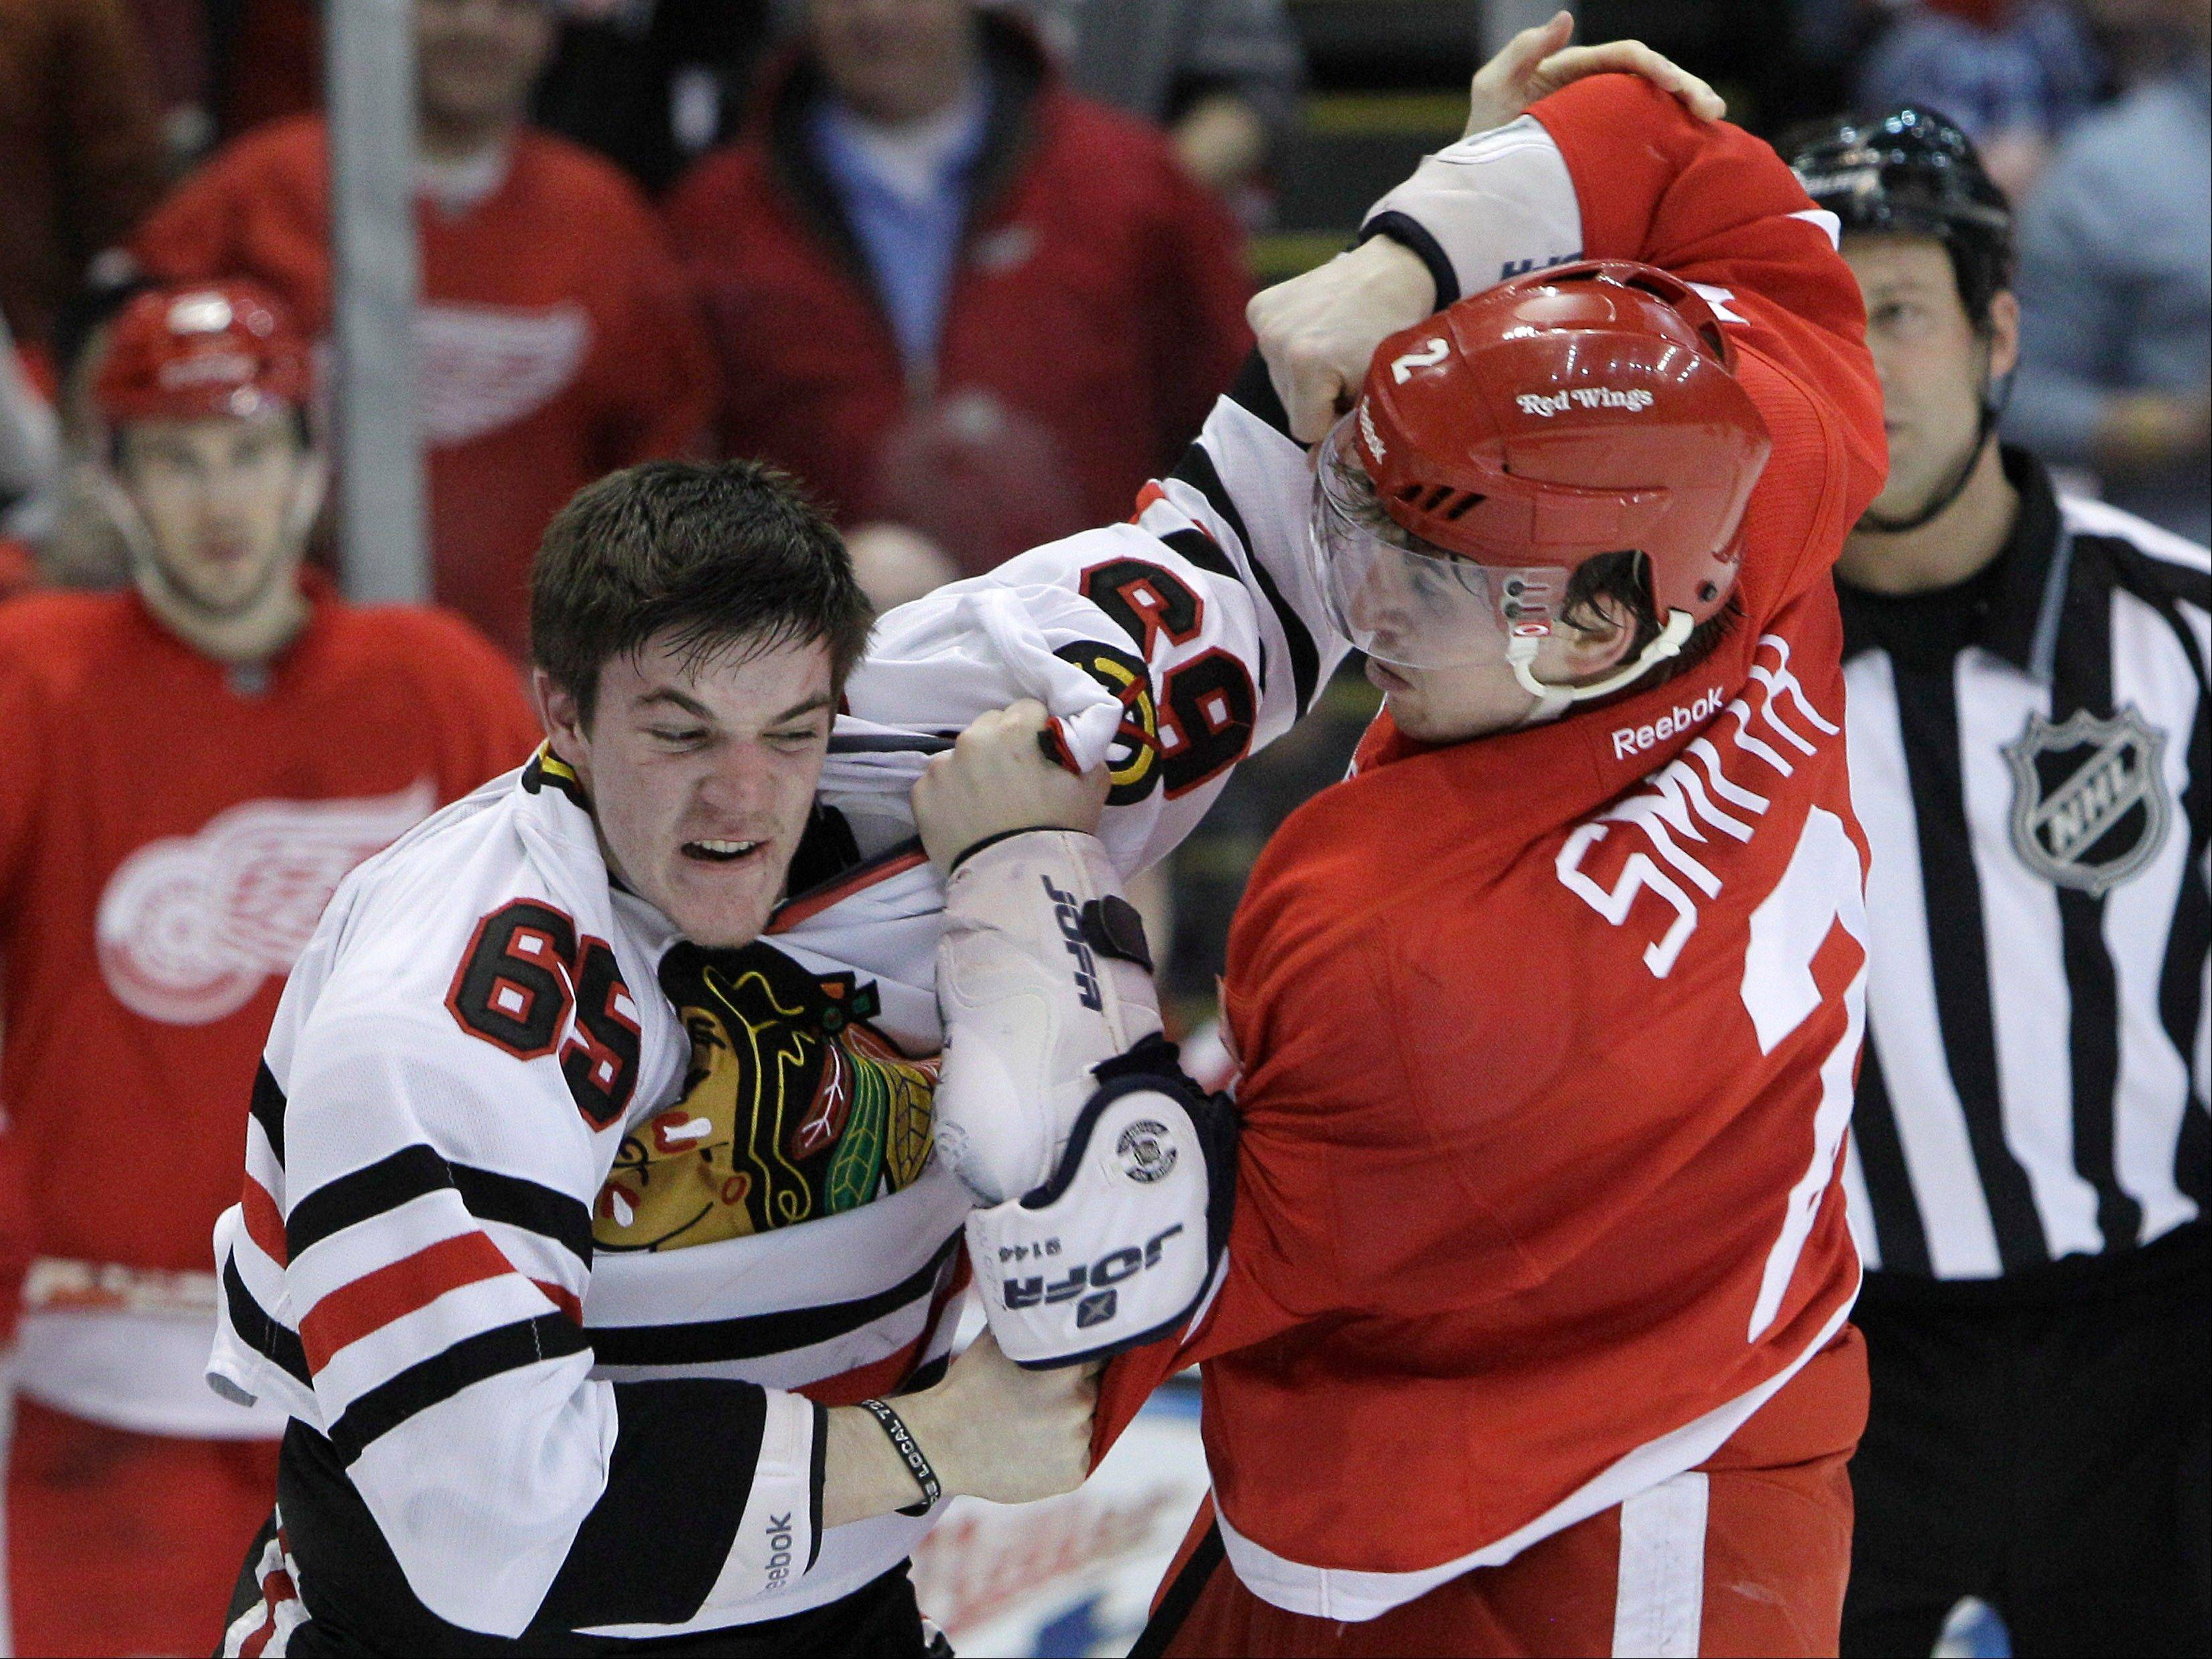 Almost everyone that Andrew Shaw fights in the NHL is much bigger. His opponent this time is Detroit defenseman Brendan Smith. They hooked up during a March 4 game.